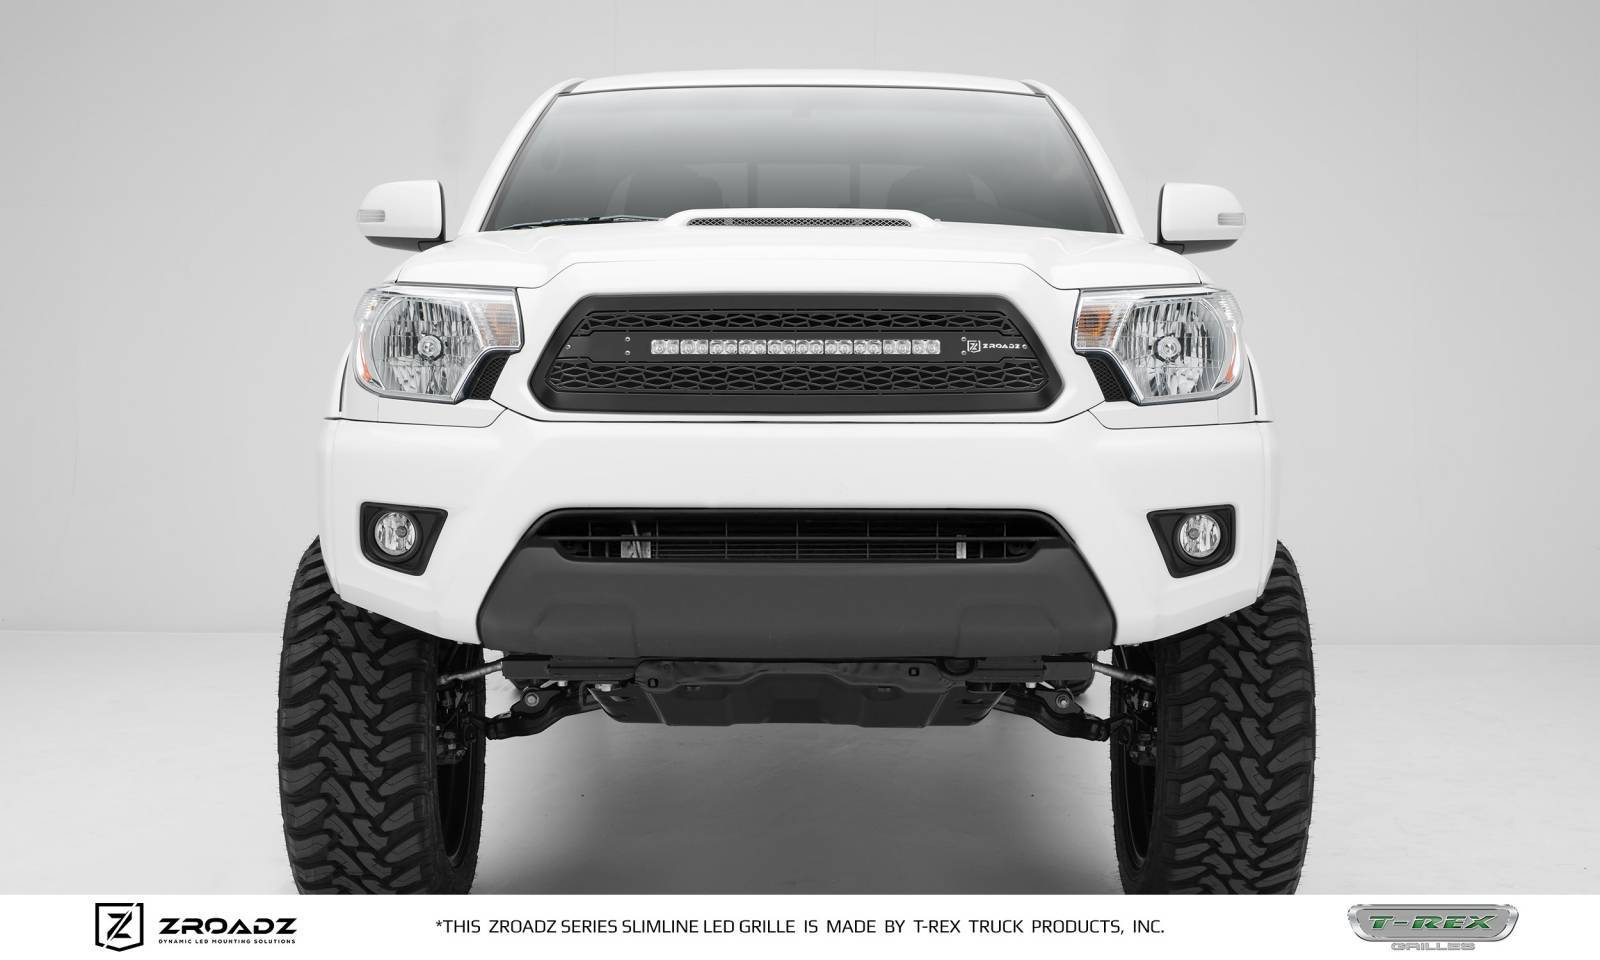 T-REX Toyota Tacoma - ZROADZ Series - Main Insert - Grille w/ One 20 Inch Slim Line Single Row LED Light Bar - Includes Universal Wiring Harness - Part# Z319381